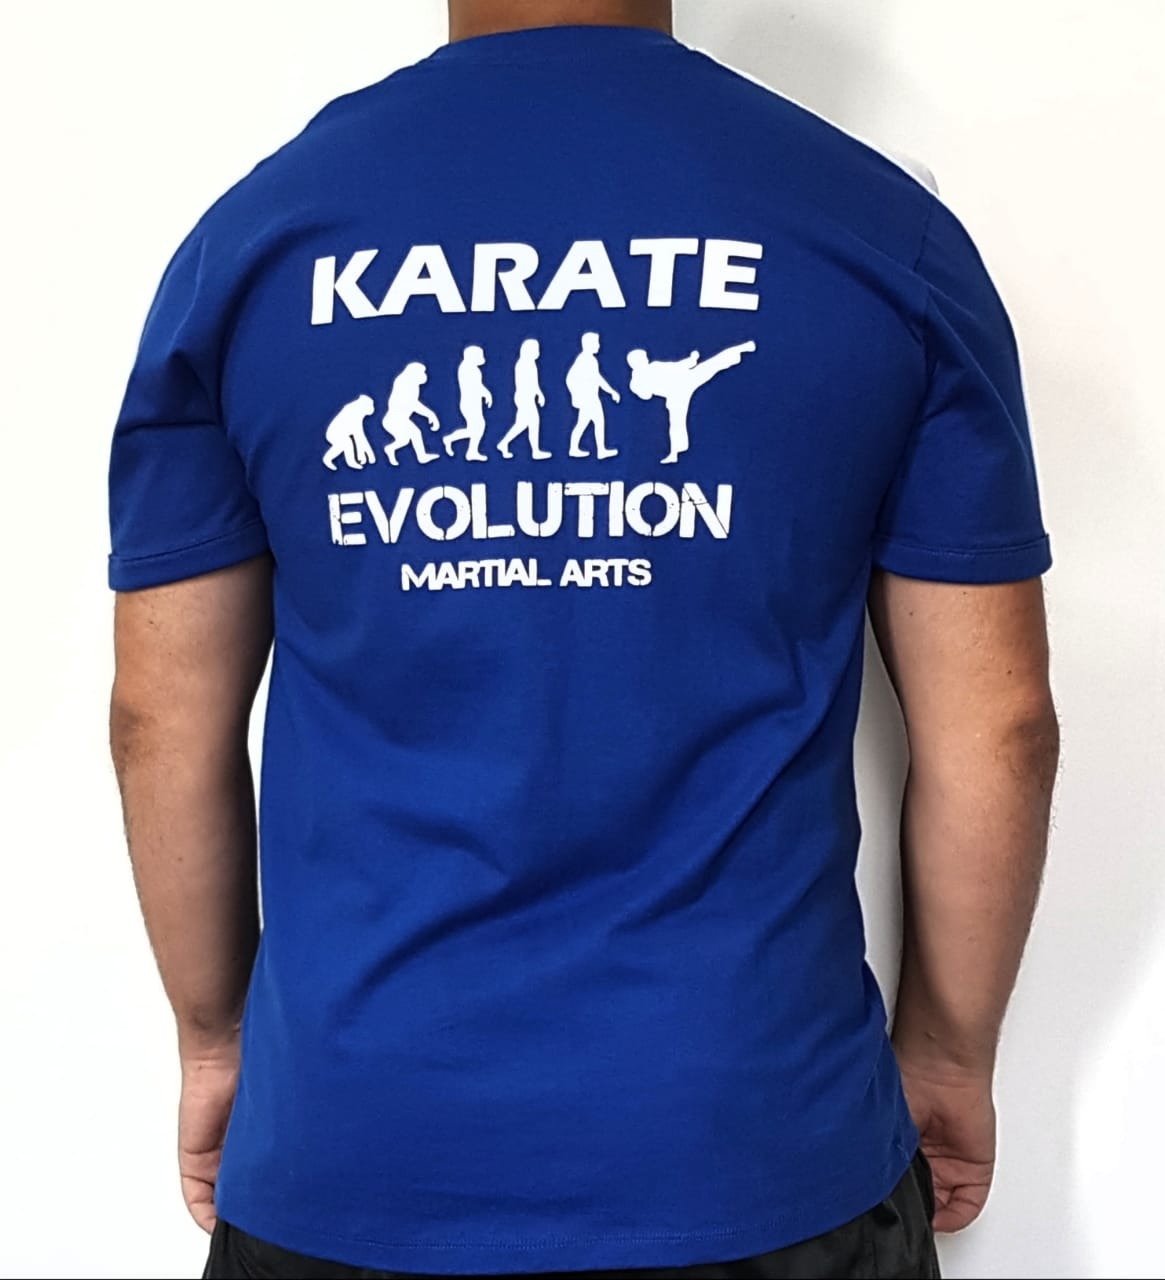 Camiseta Karate Evolution estampa nas costas